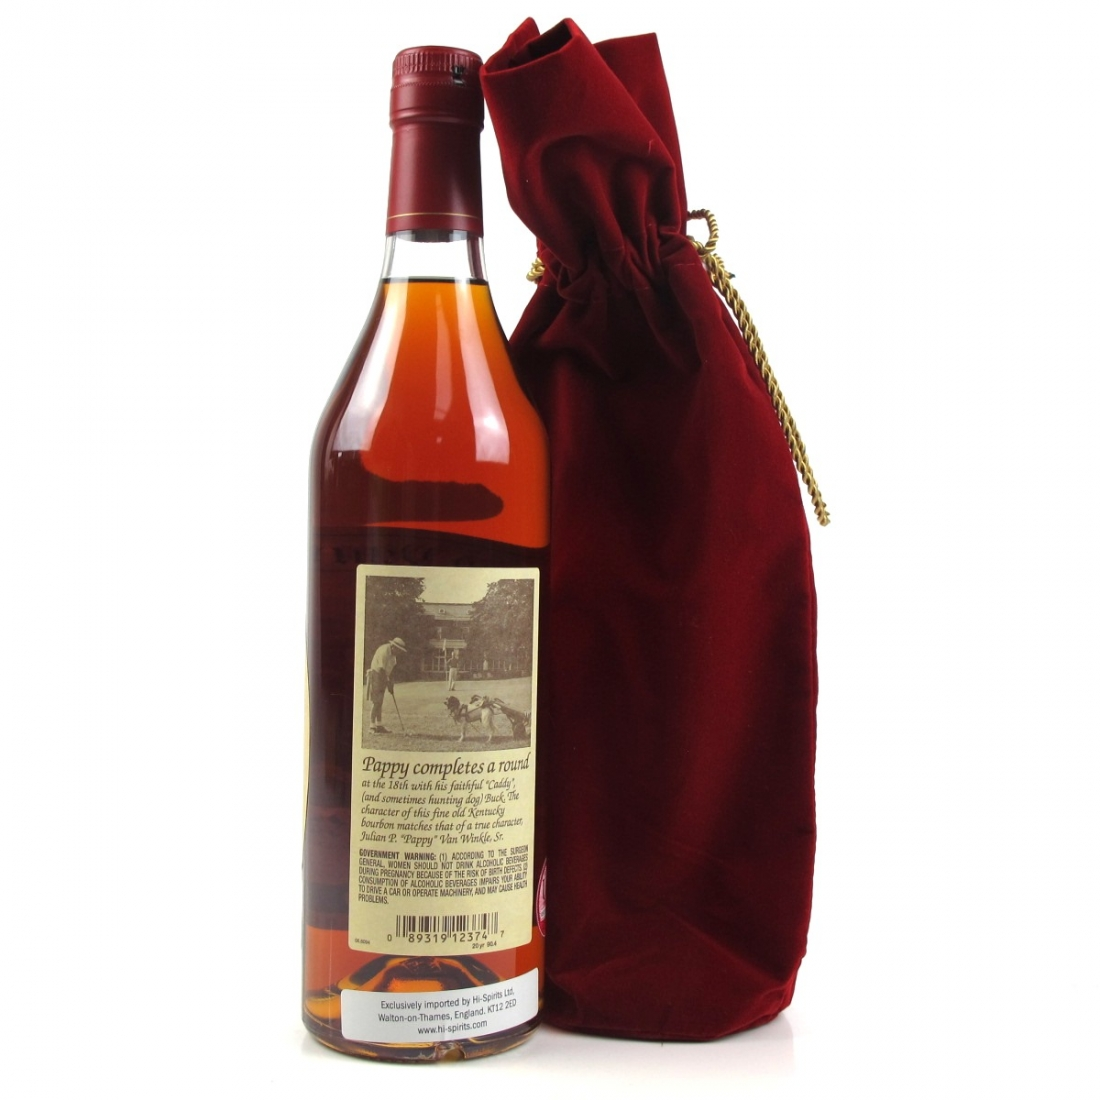 27b0b5931a4 Pappy Van Winkle 20 Year Old Family Reserve